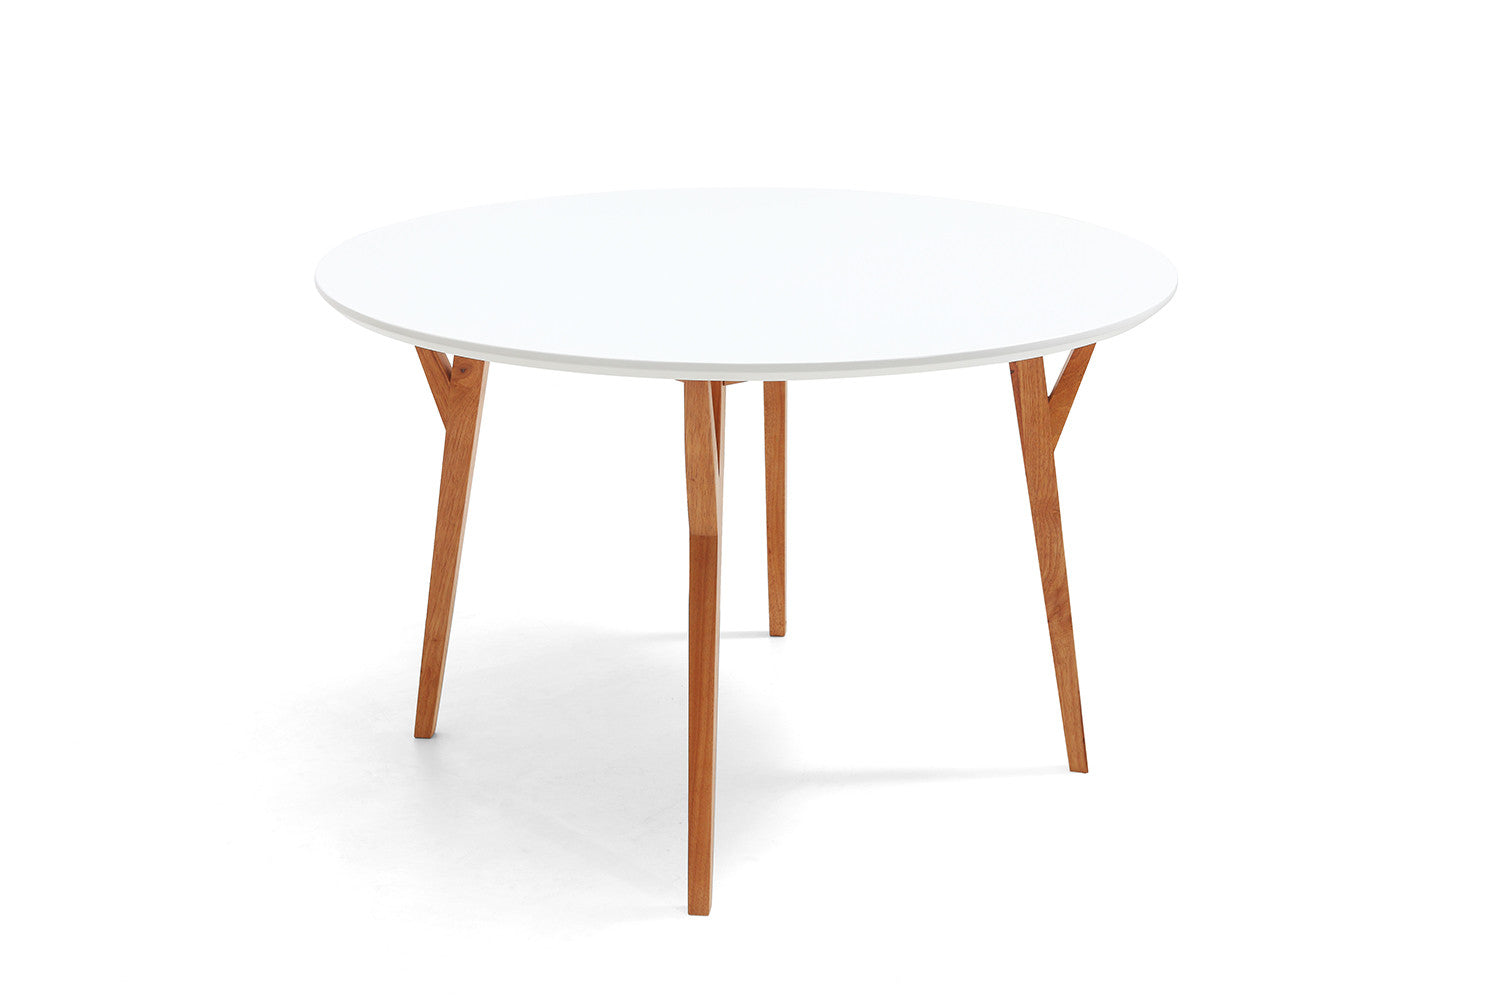 Table de salle manger ronde design scandinave moesa for Table a manger blanche avec rallonge